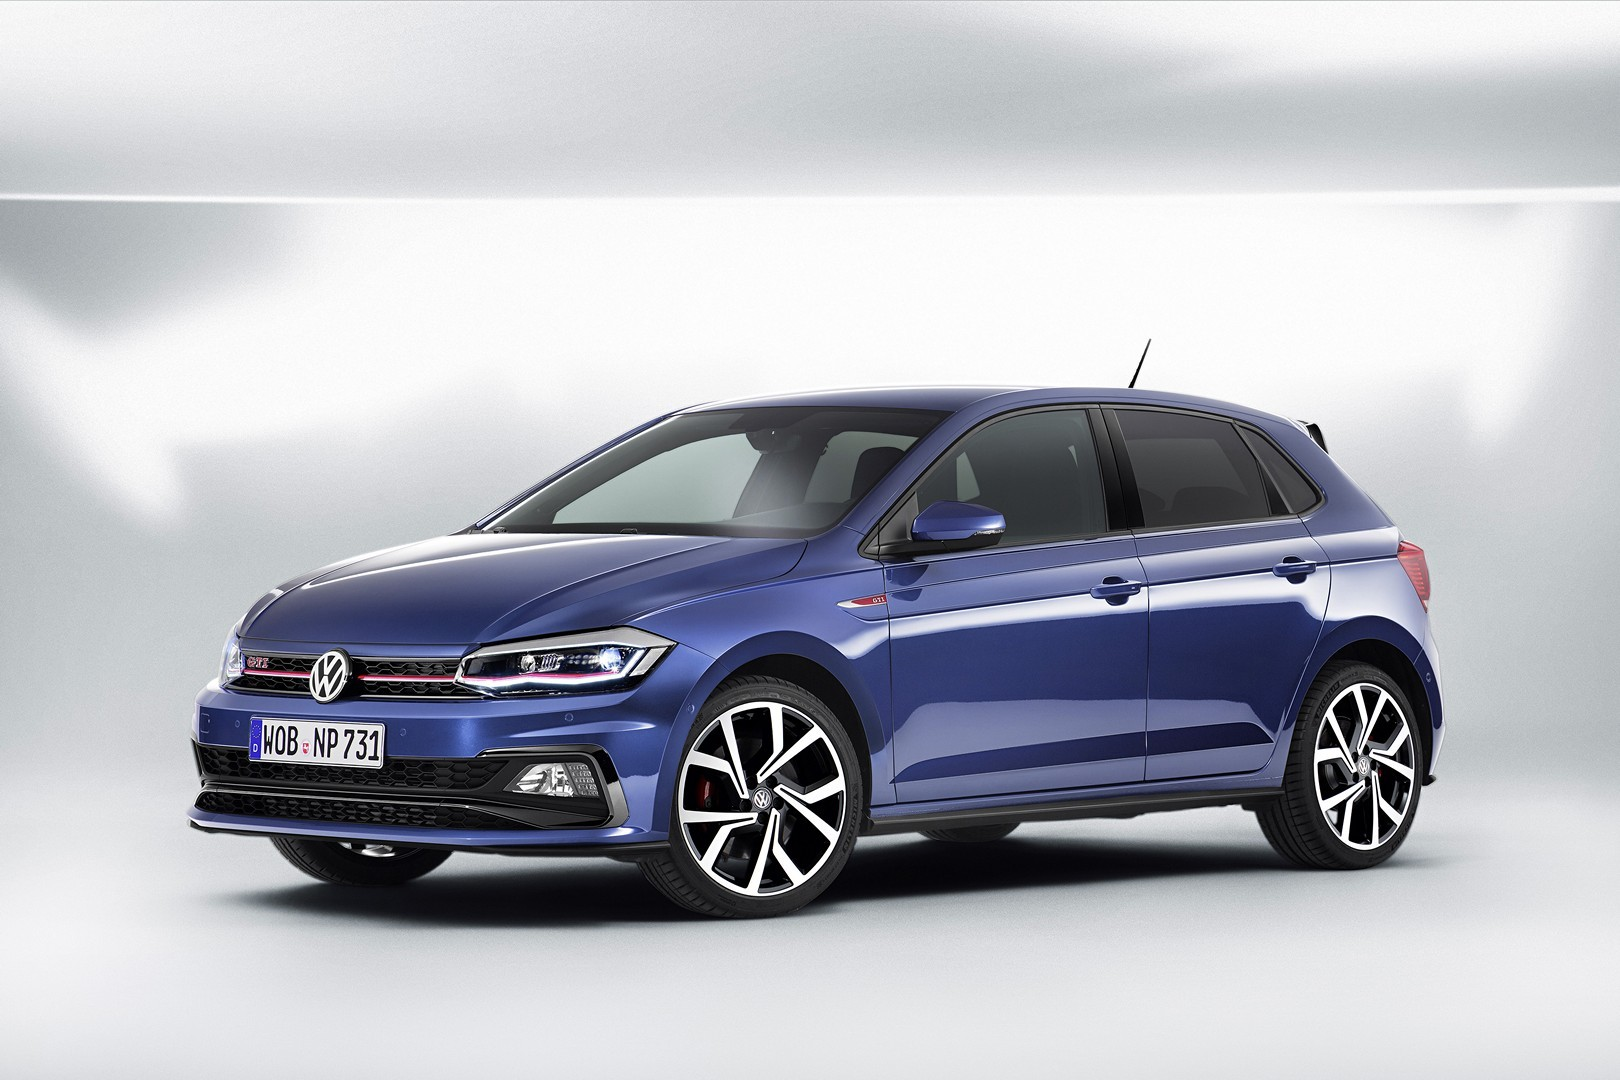 2018 Volkswagen Polo GTI Priced At EUR 23,950 - autoevolution